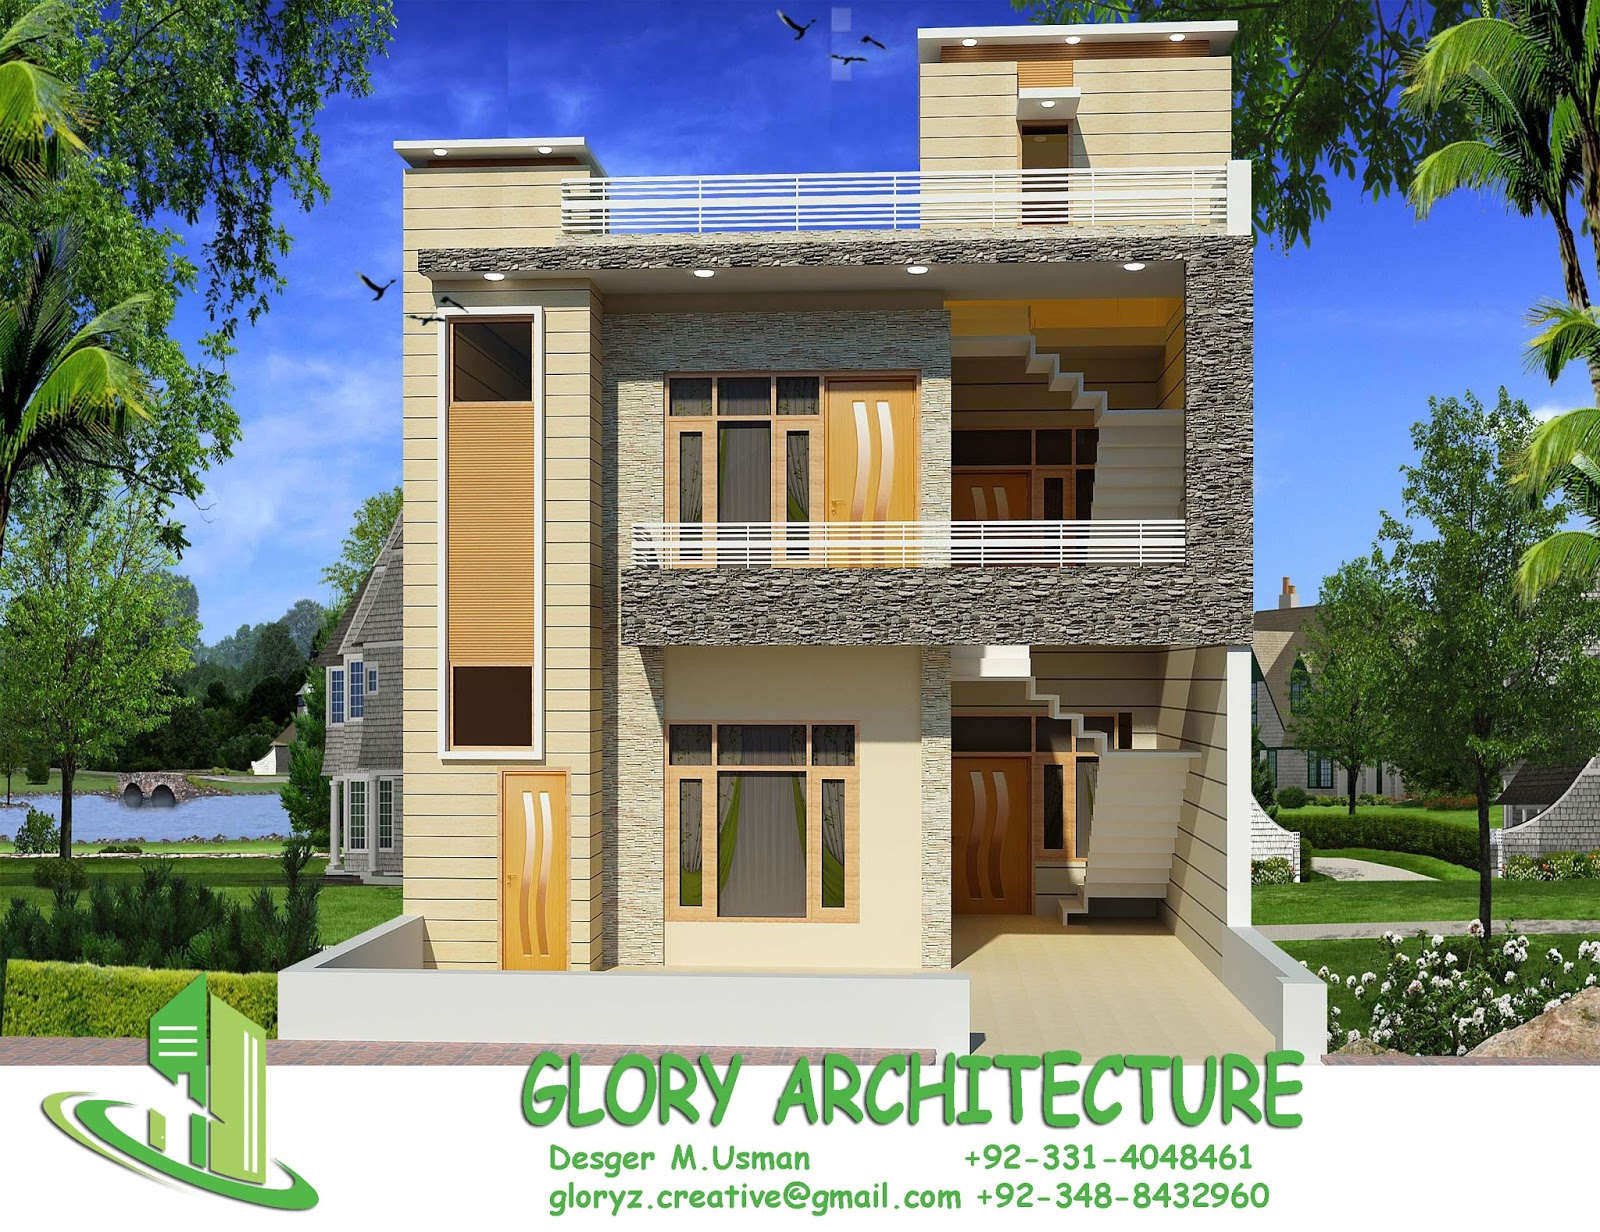 D Front Elevation Of School : House plan elevation d view